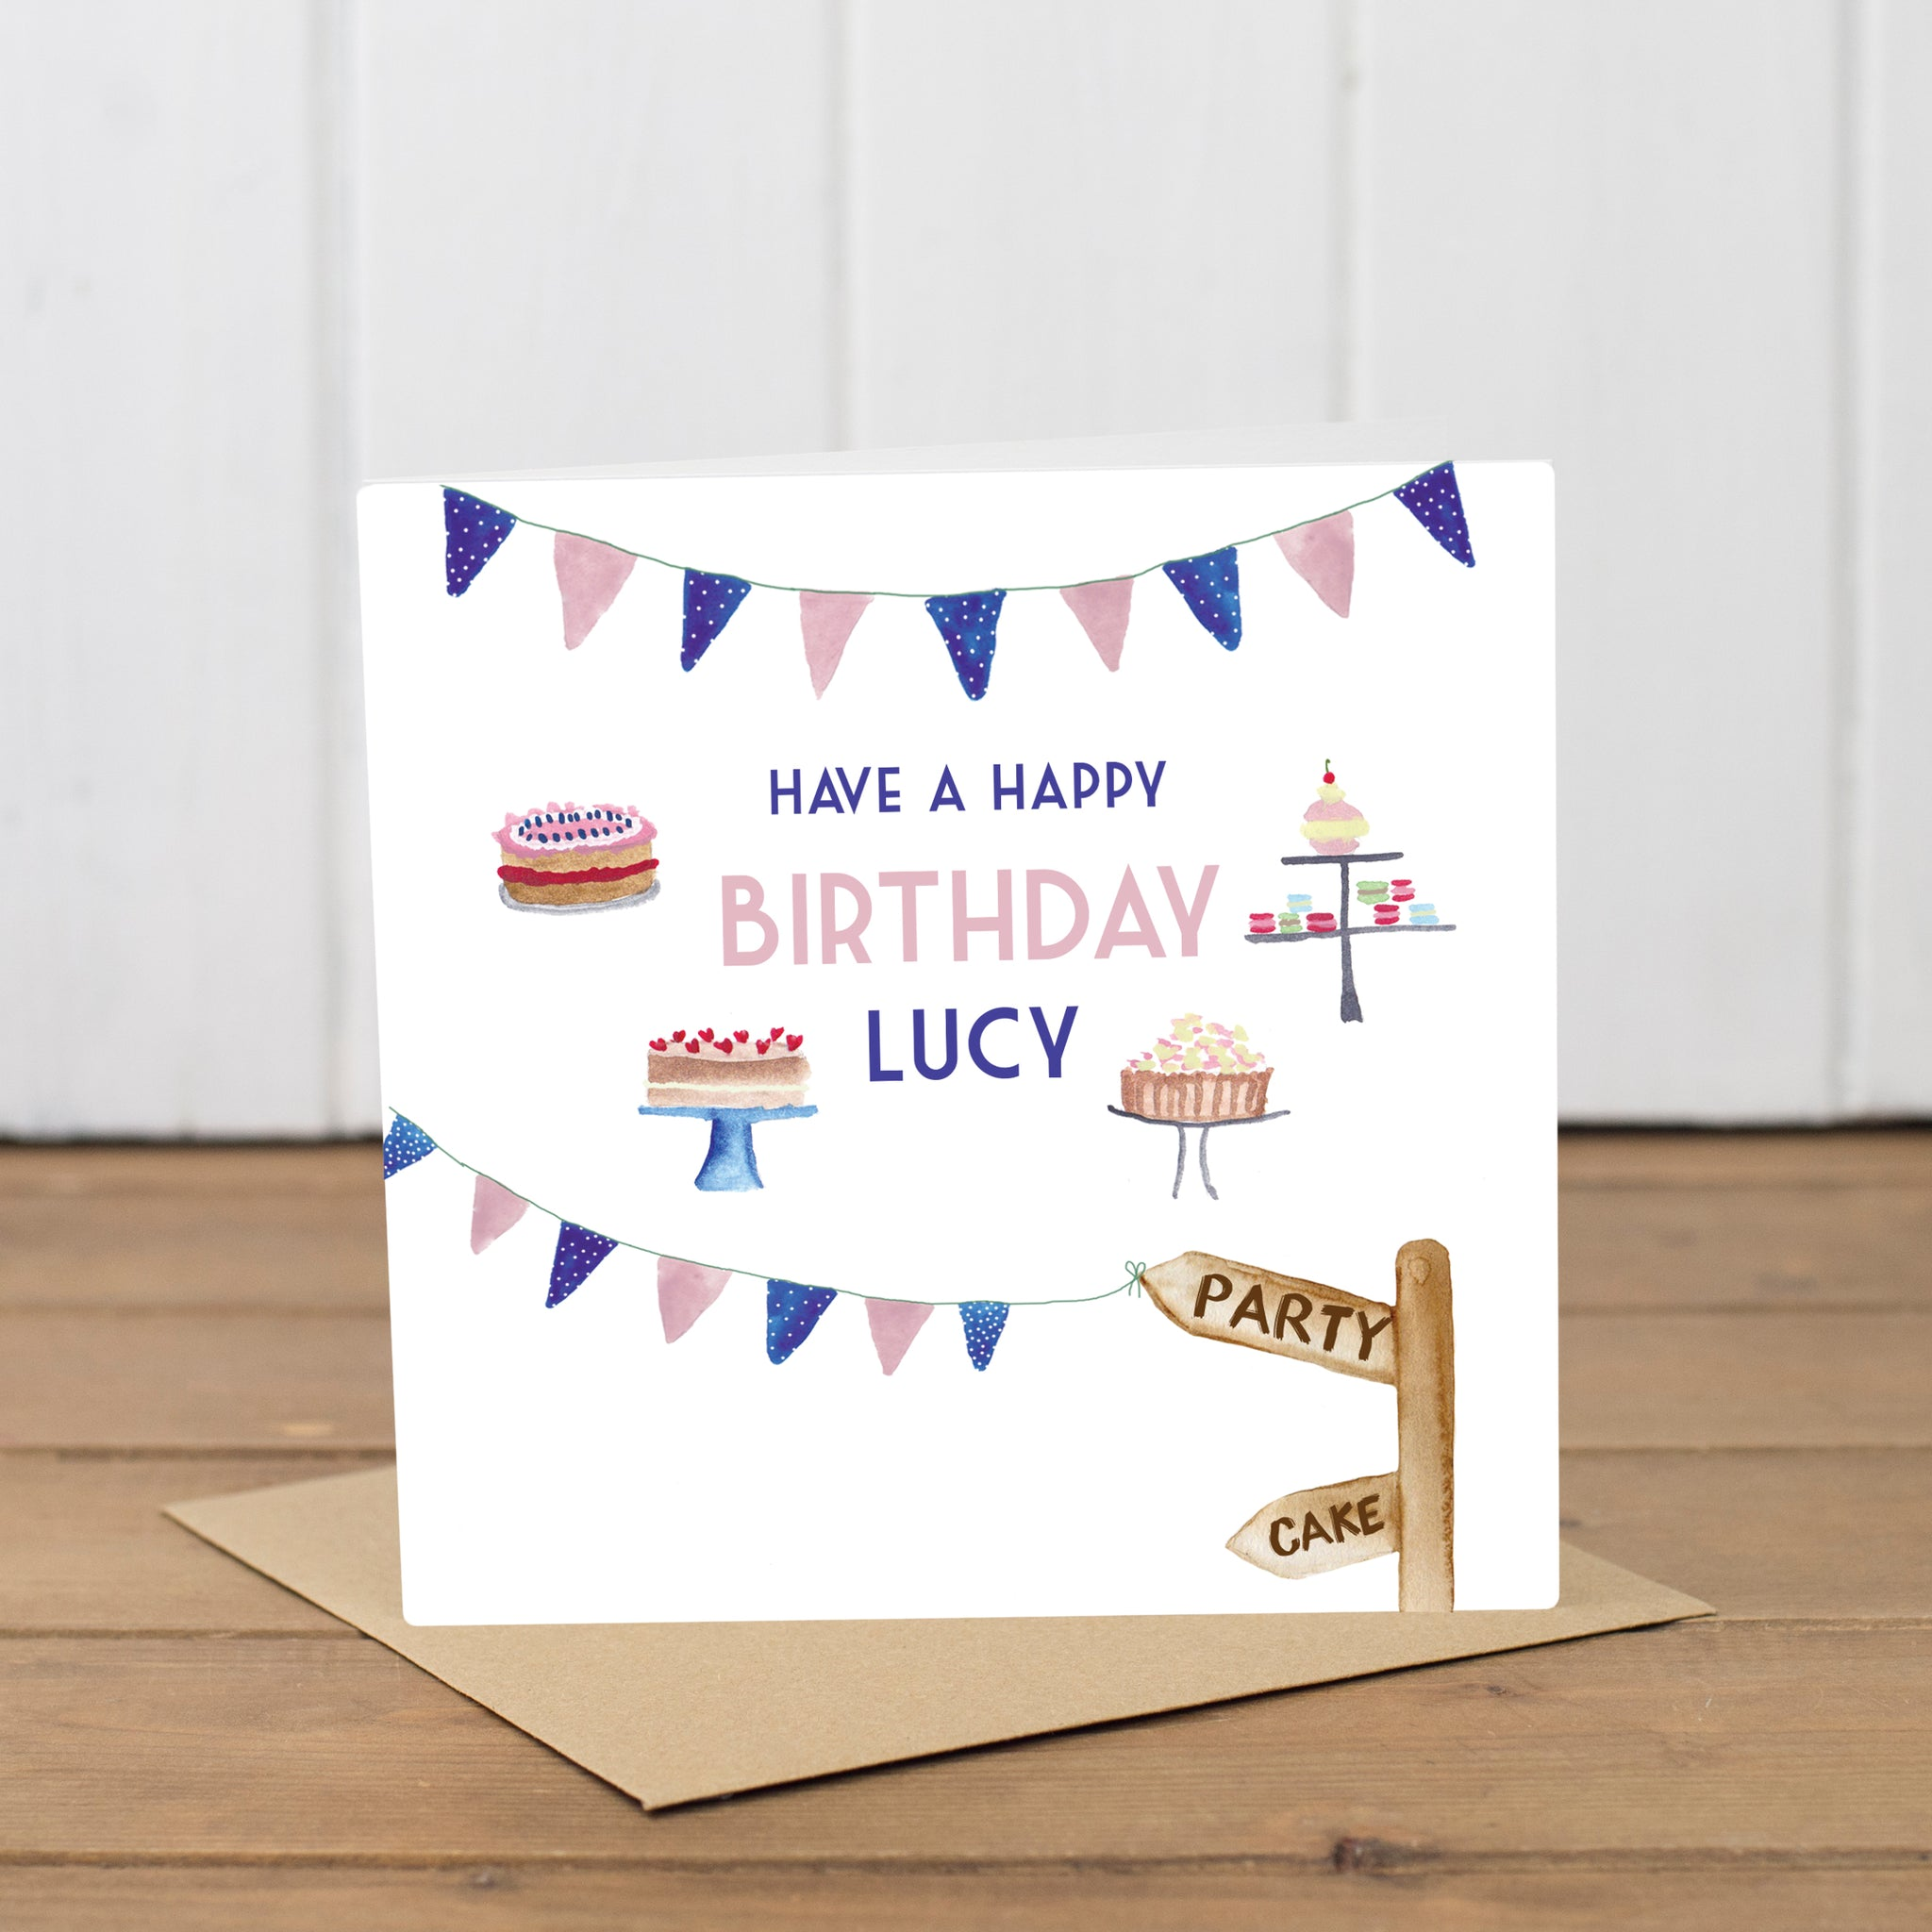 Personalised Party Cakes Birthday Card